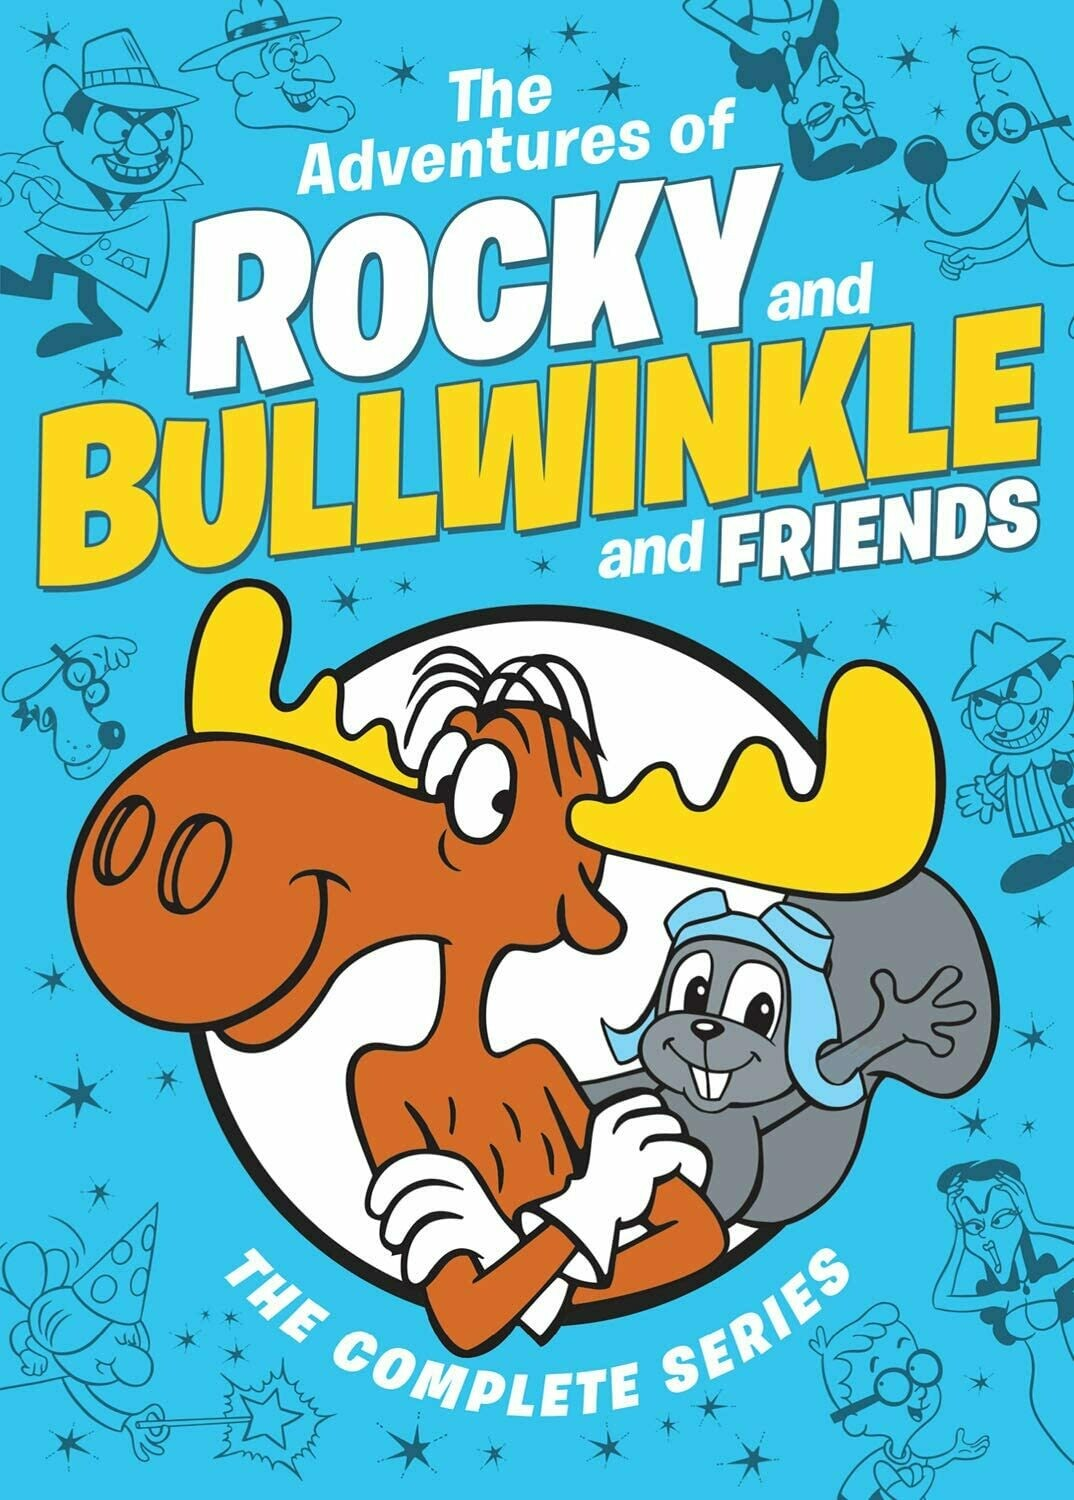 The Adventures of Rocky and Bullwinkle and Friends: The Complete Series (7 day rental)